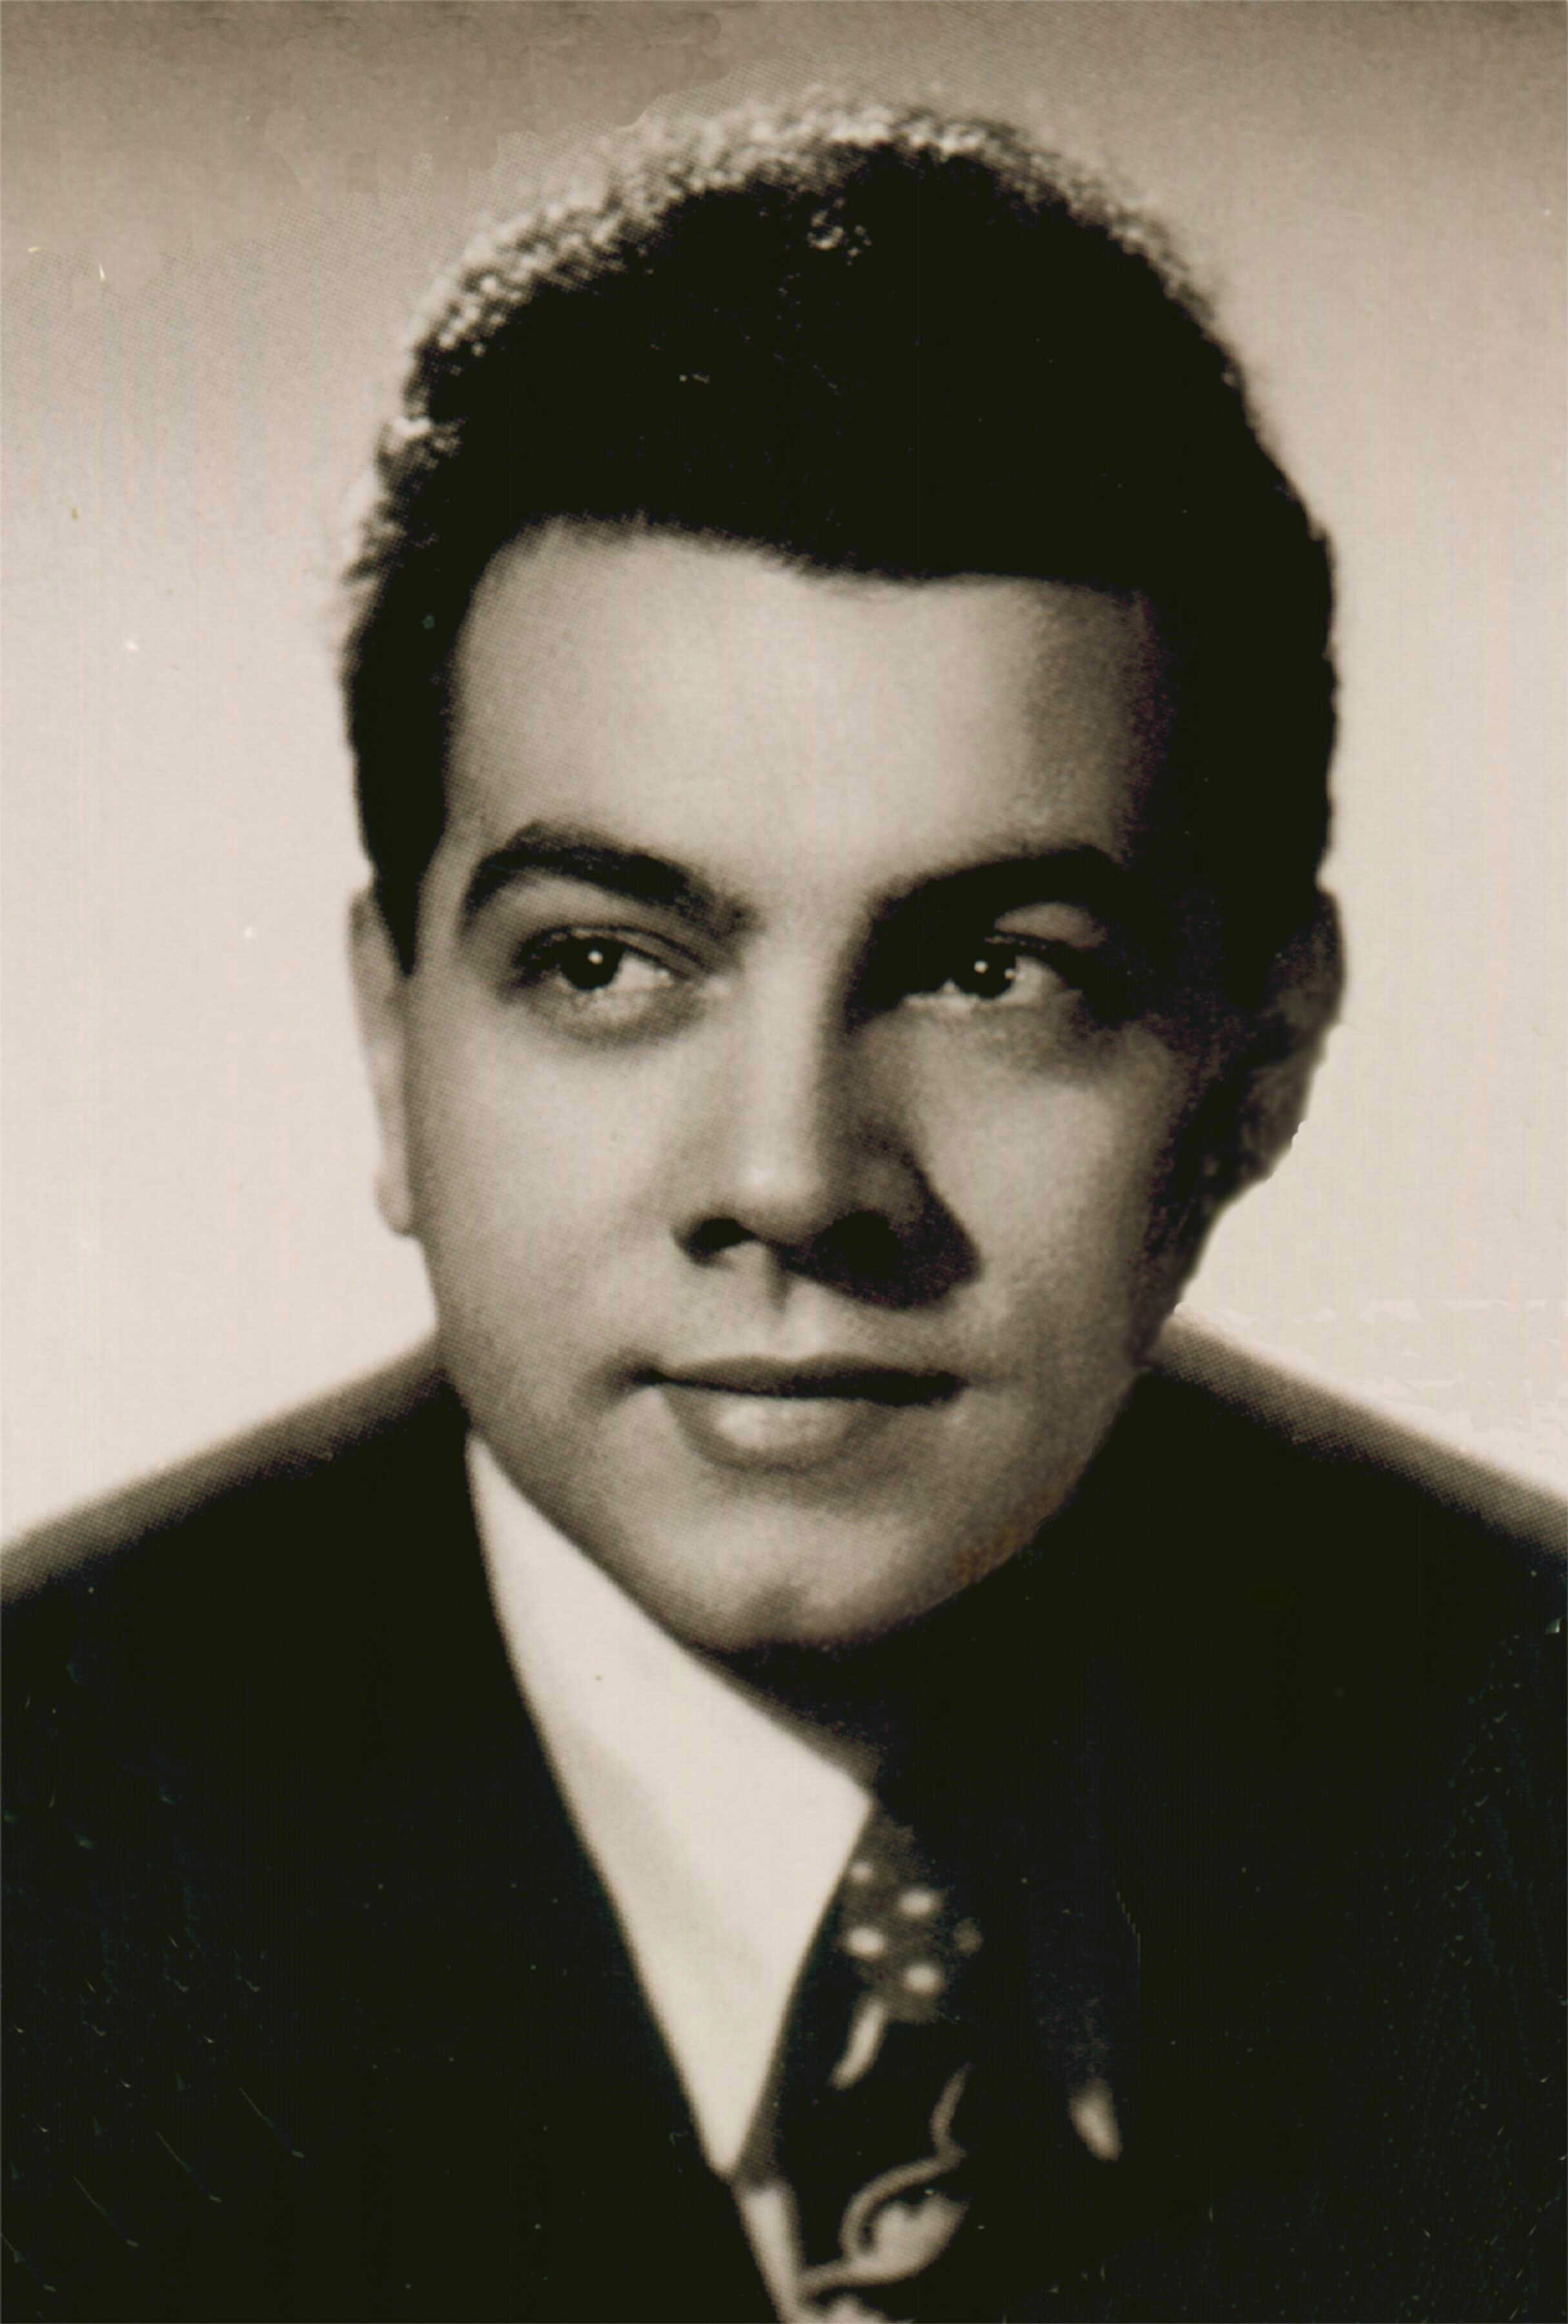 Pin by Irina Sarkisova on Mario Lanza | Mario lanza, Die